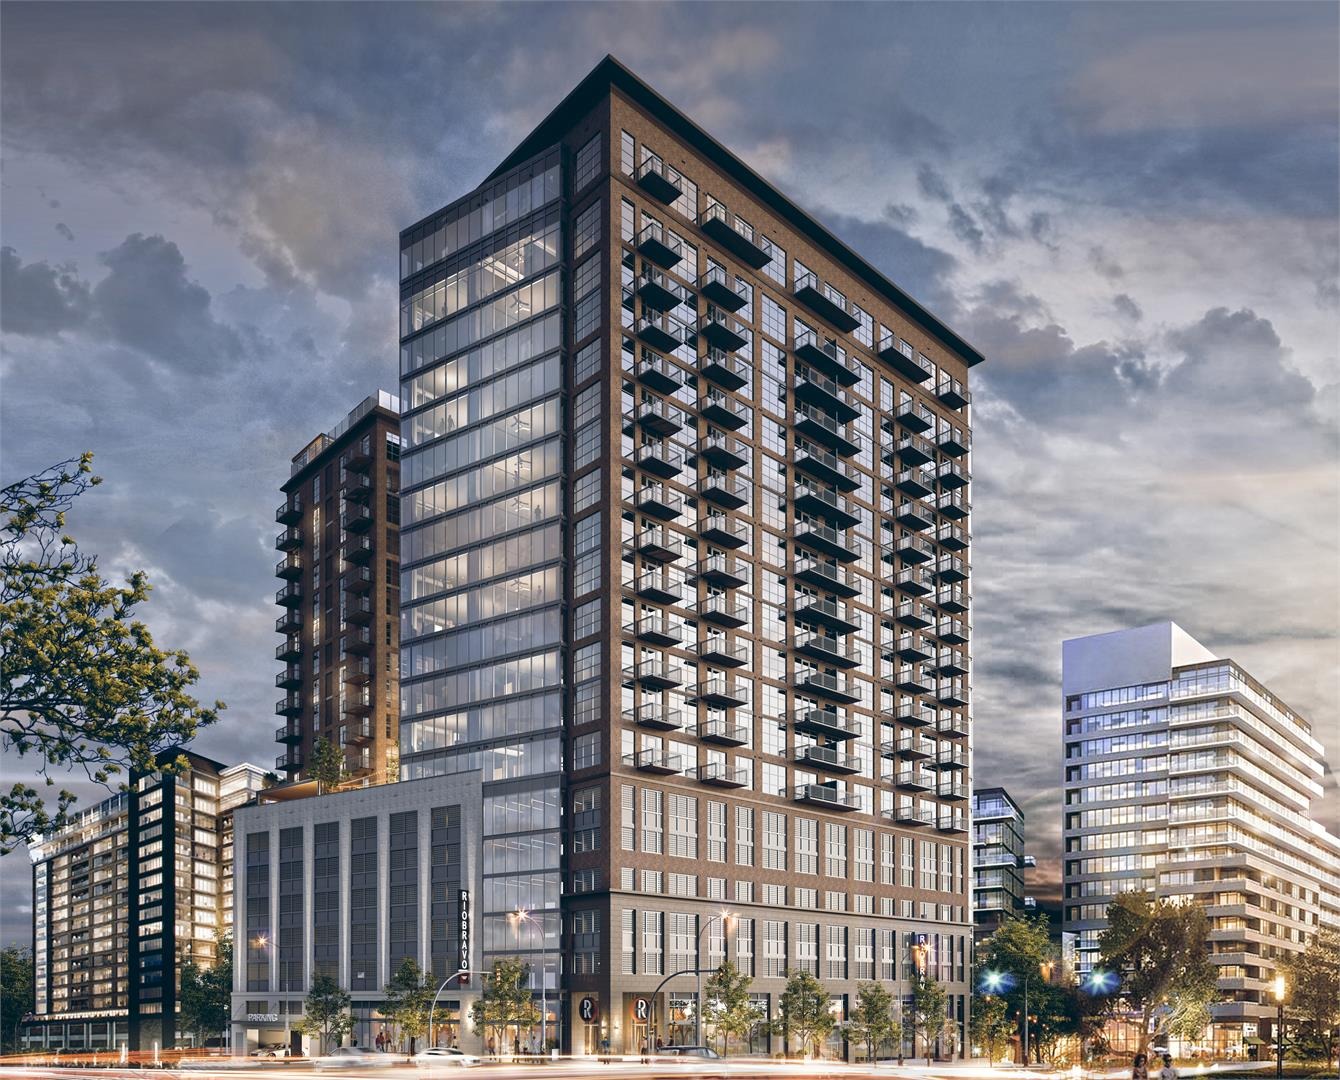 LMC Scheduled to Open 290-Unit Mixed-Use High-Rise Development in Vibrant Buckhead Village Neighborhood of Atlanta